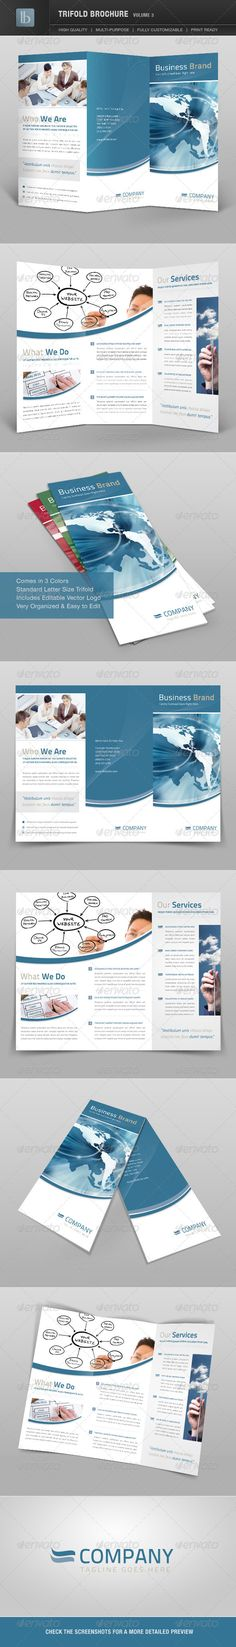 Trifold Brochure | Volume 3 #GraphicRiver Trifold Brochure | Volume 3 Clean and modern trifold brochure that comes in 3 color variations. Stylish layouts were carefully constructed in photoshop with well organized layer sets. Vector logo is included as well as vector wave graphic. Masks are auto applied and everything is very easy to edit. These templates are perfectly suited for any business wanting a clean and modern look. Features - TriFold Brochure with 3 different color schemes - Fully…